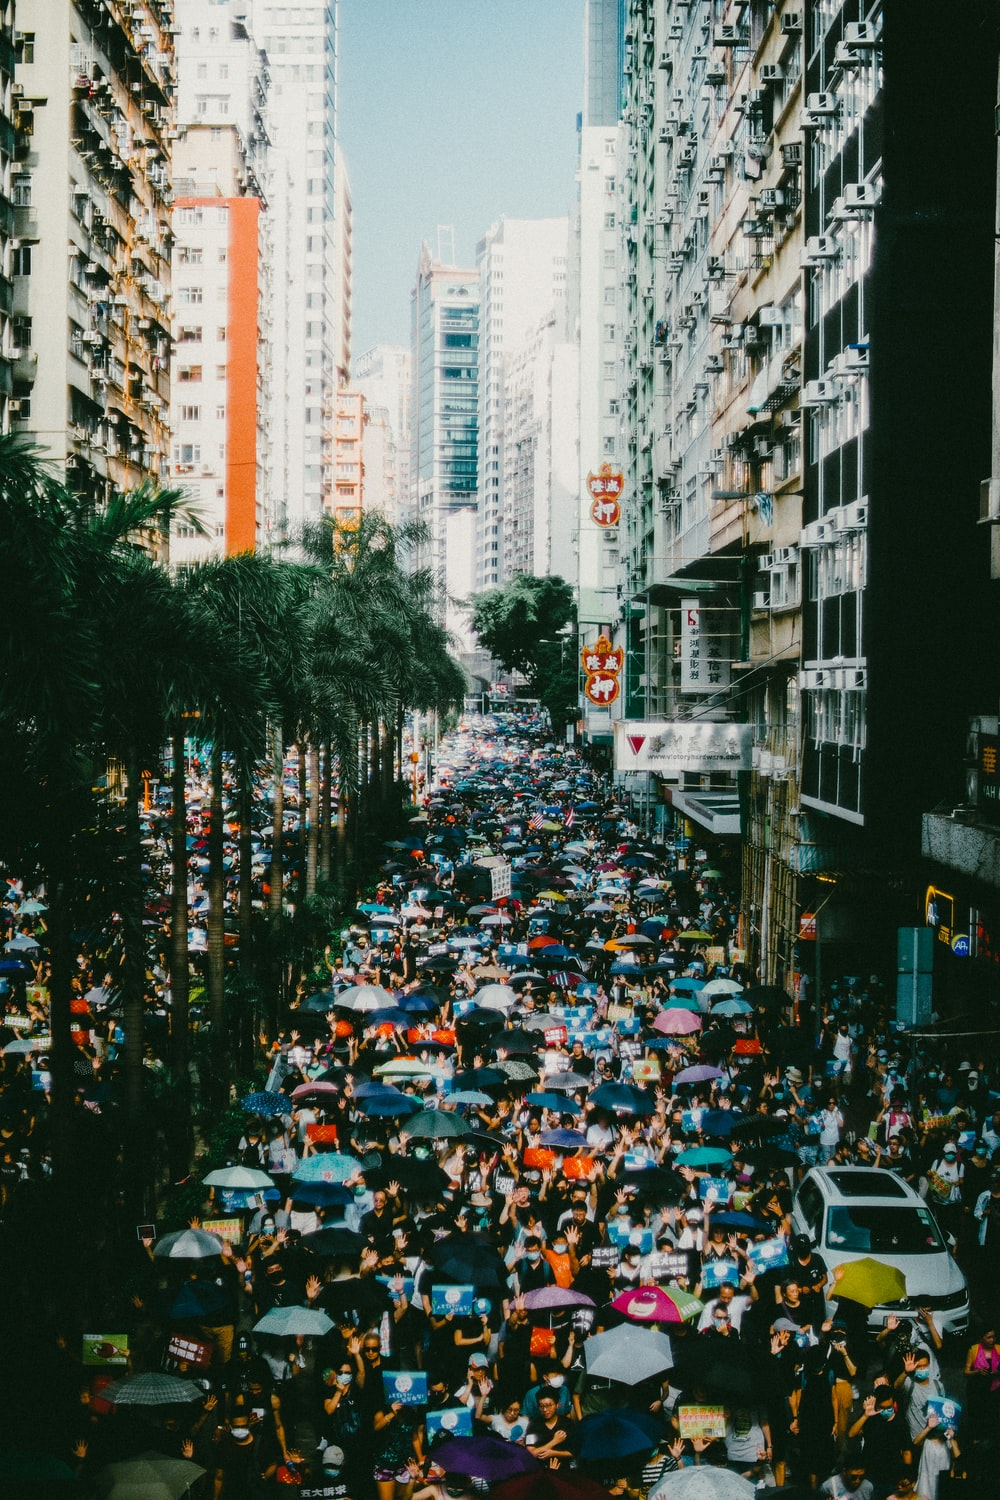 people in a city street during daytime